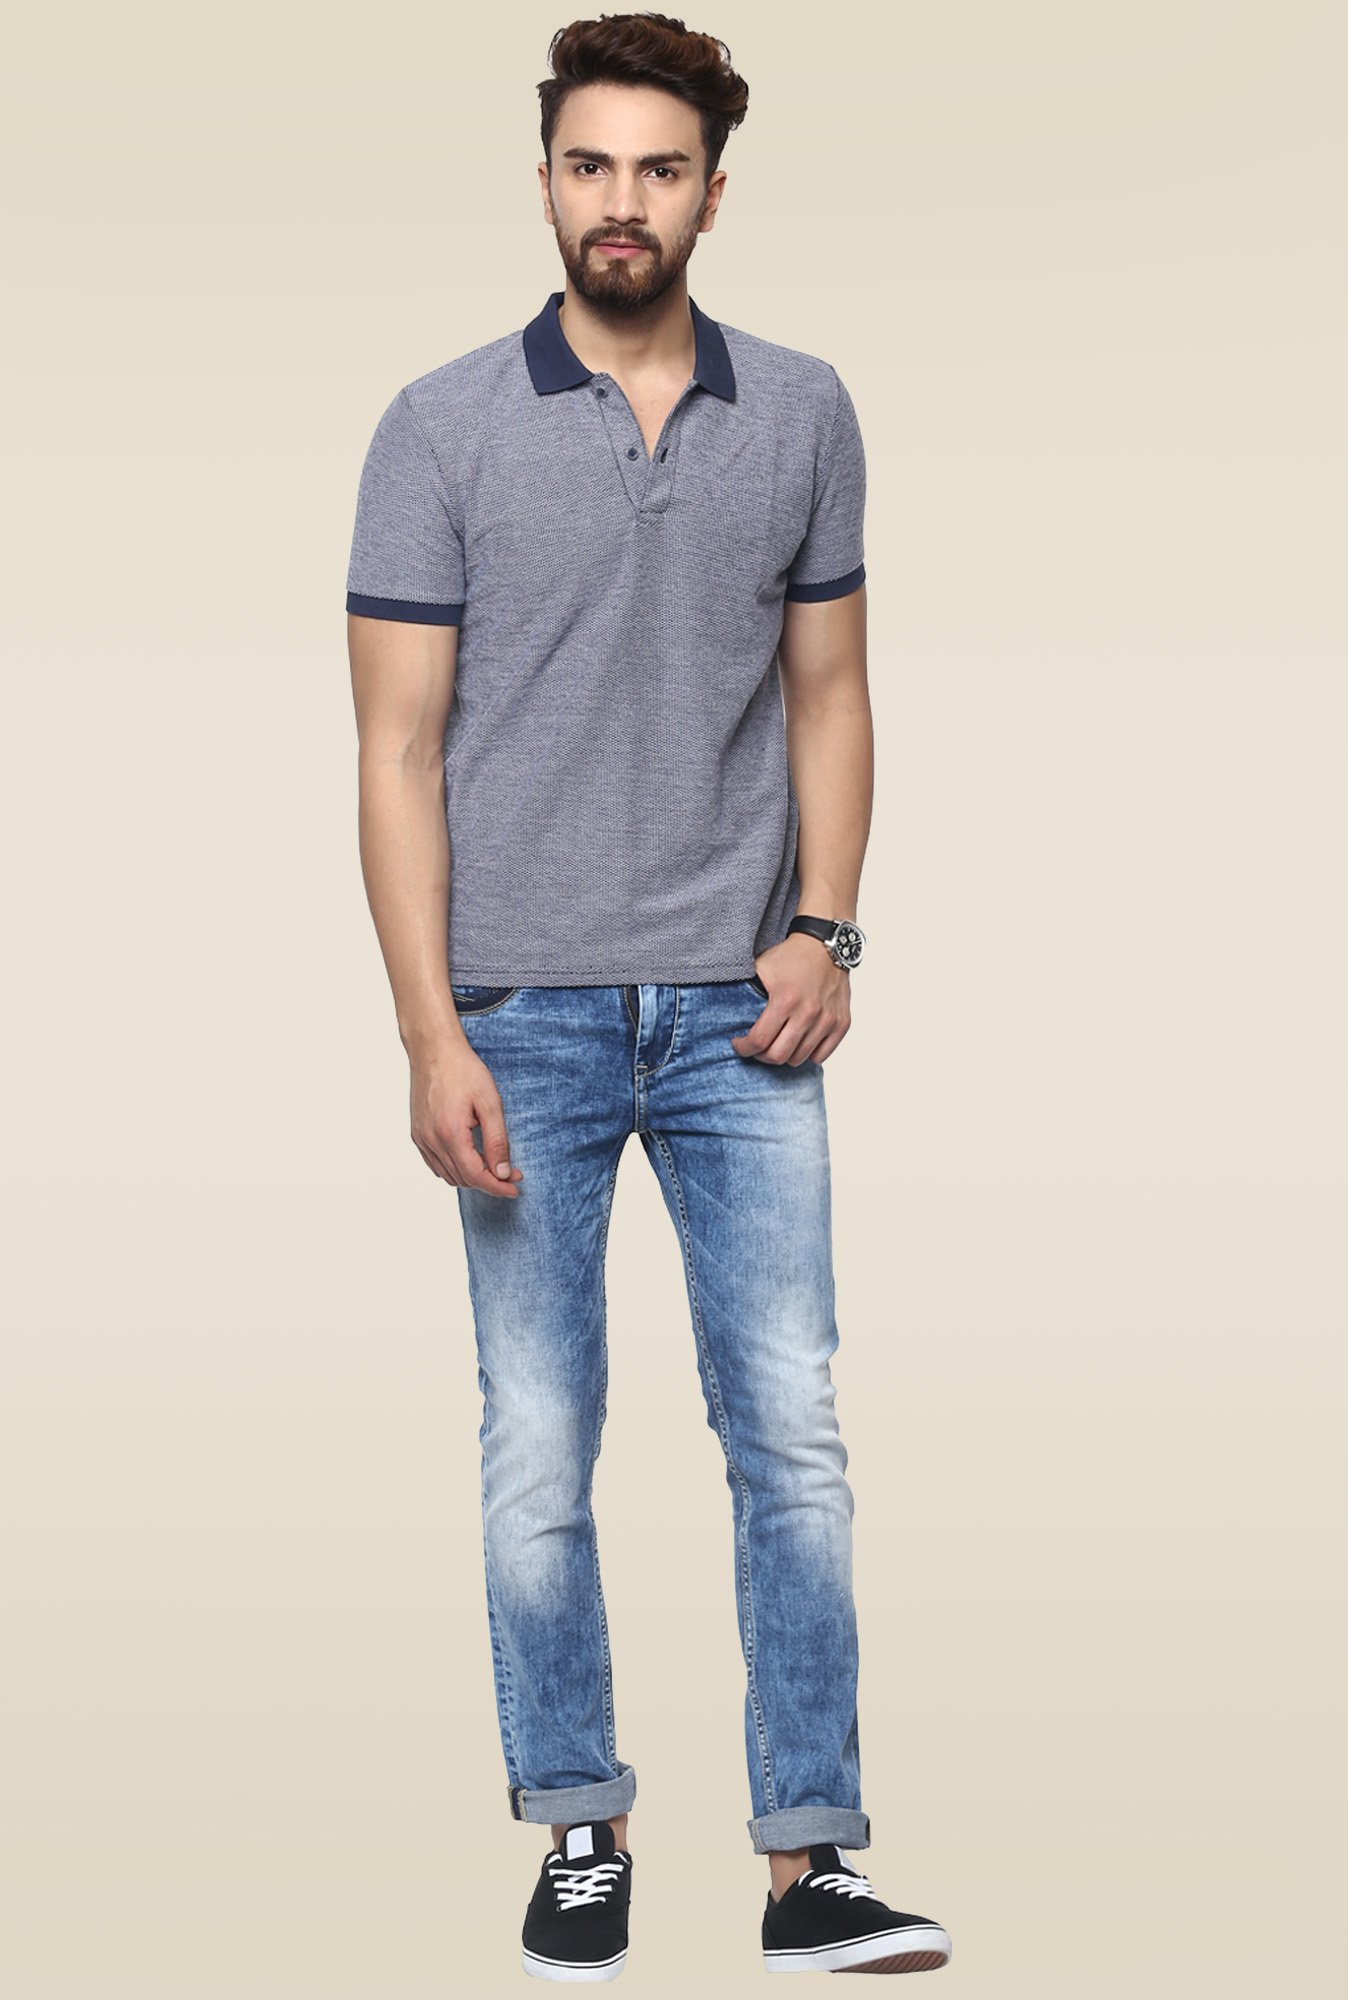 Mufti Mid Blue Acid Washed Fit Jeans